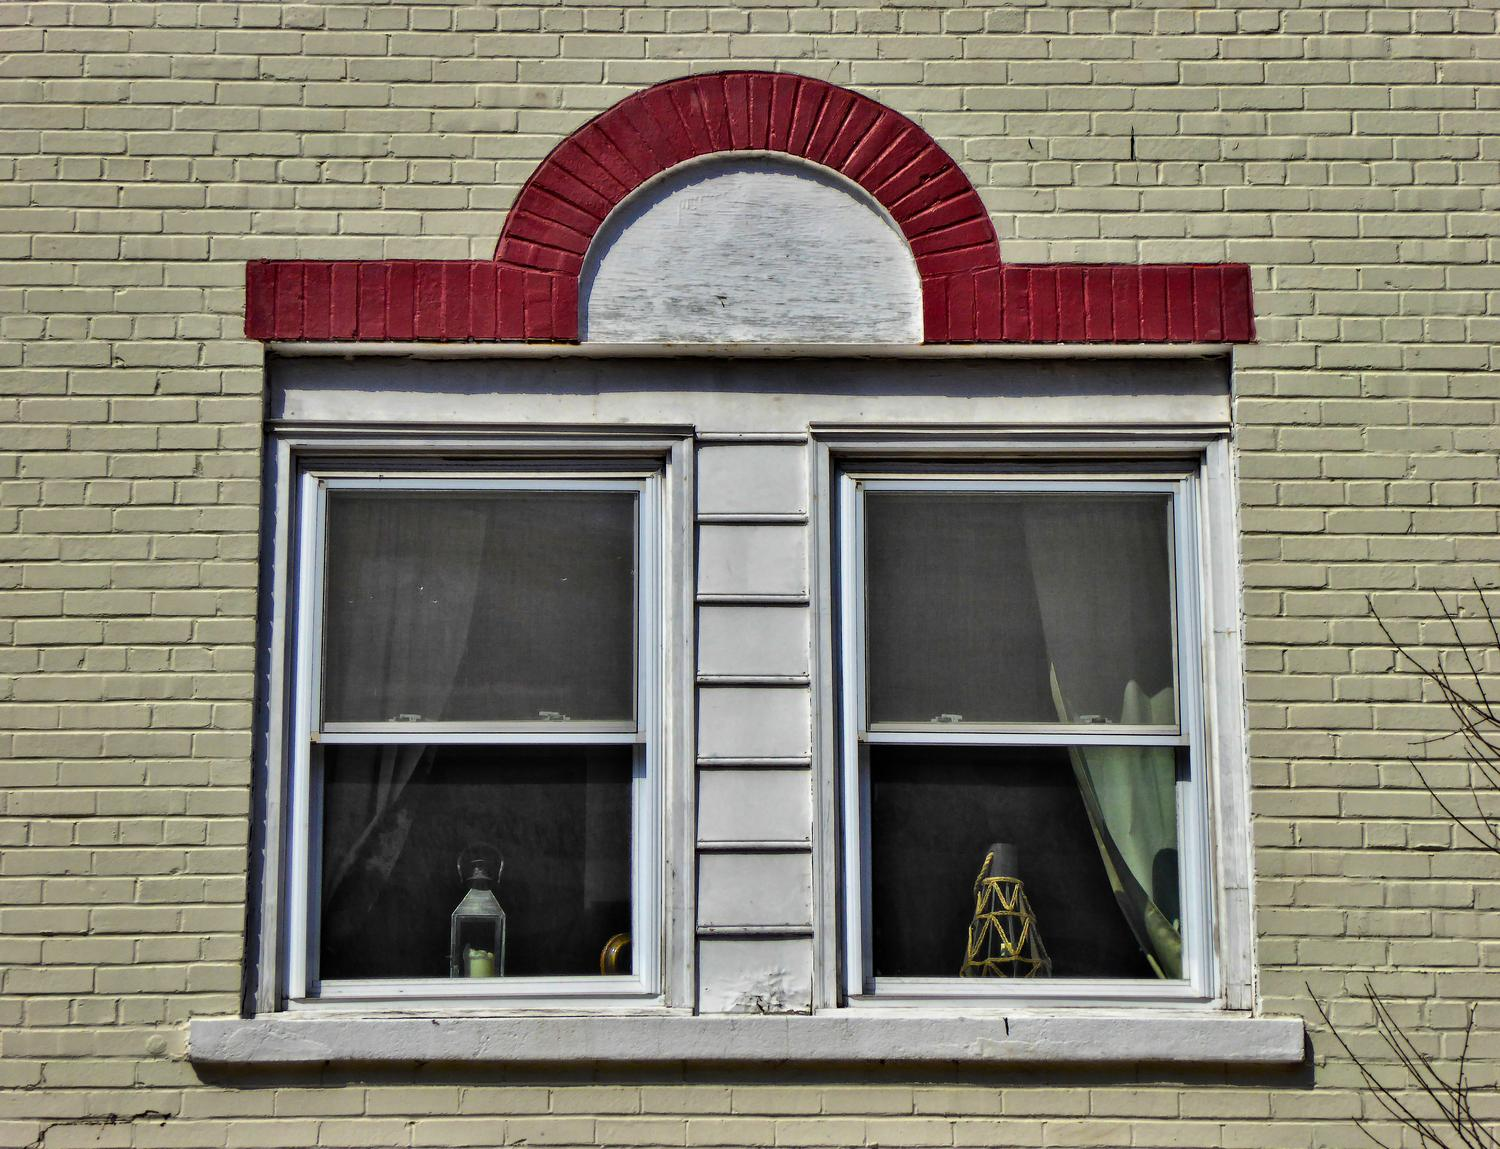 - Old windows with an interesting red detail - Manassas Virginia, Panasonic DMC-ZS40 - - art  - photography - by Tony Karp